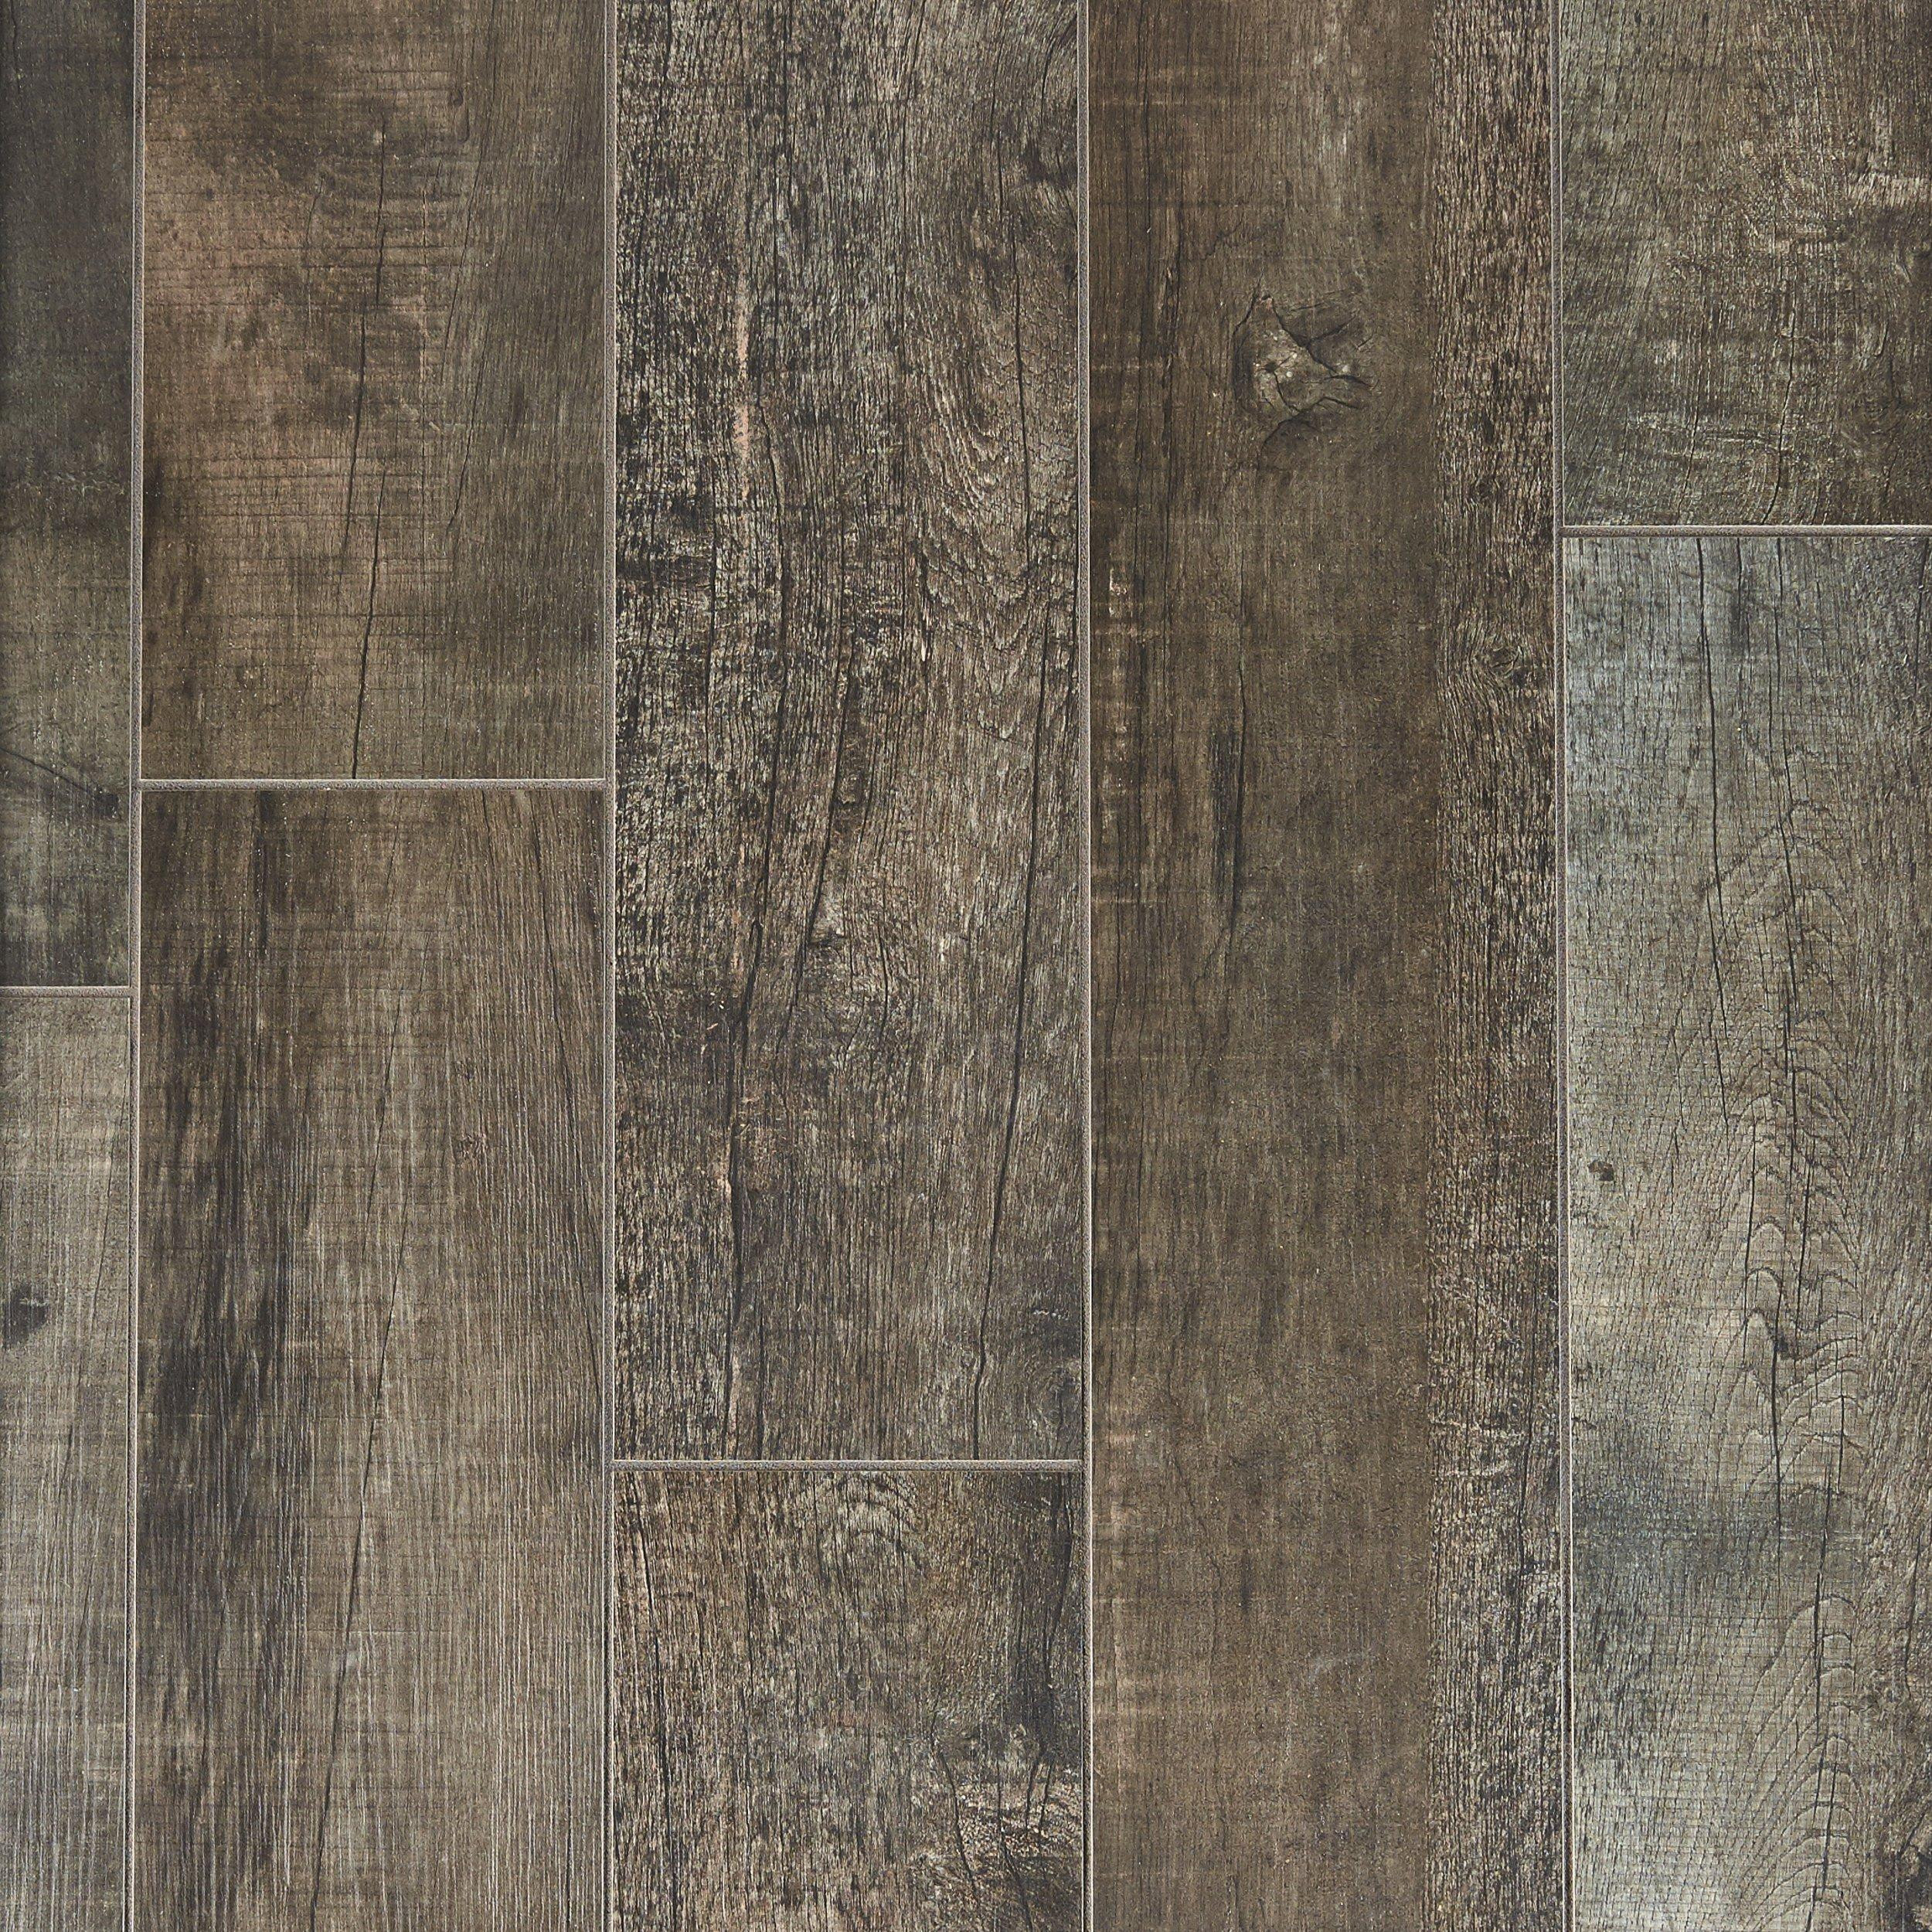 Hardwood Floors Vs Porcelain Tile Of Frontier Dark Wood Plank Porcelain Tile Country Kitchen for Frontier Dark Wood Plank Porcelain Tile